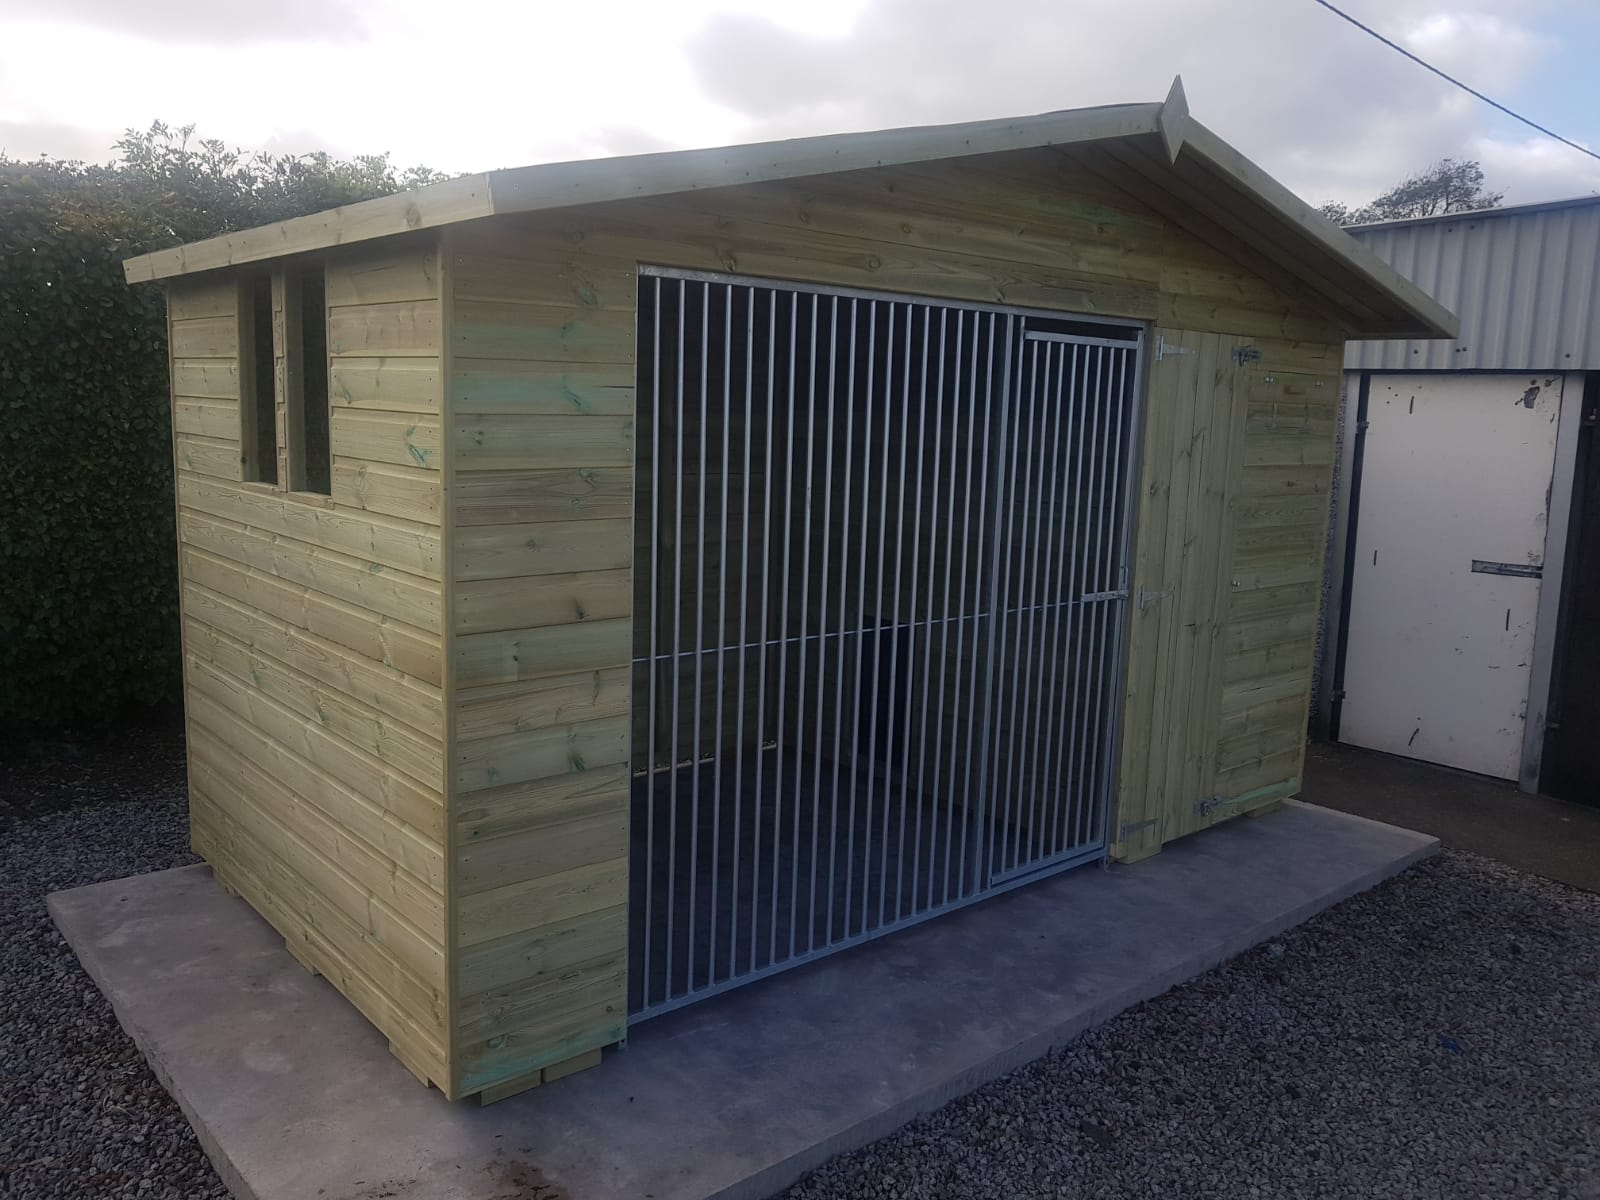 The Bramhall 10.6ft Wide x 6ft Deep Dog Kennel